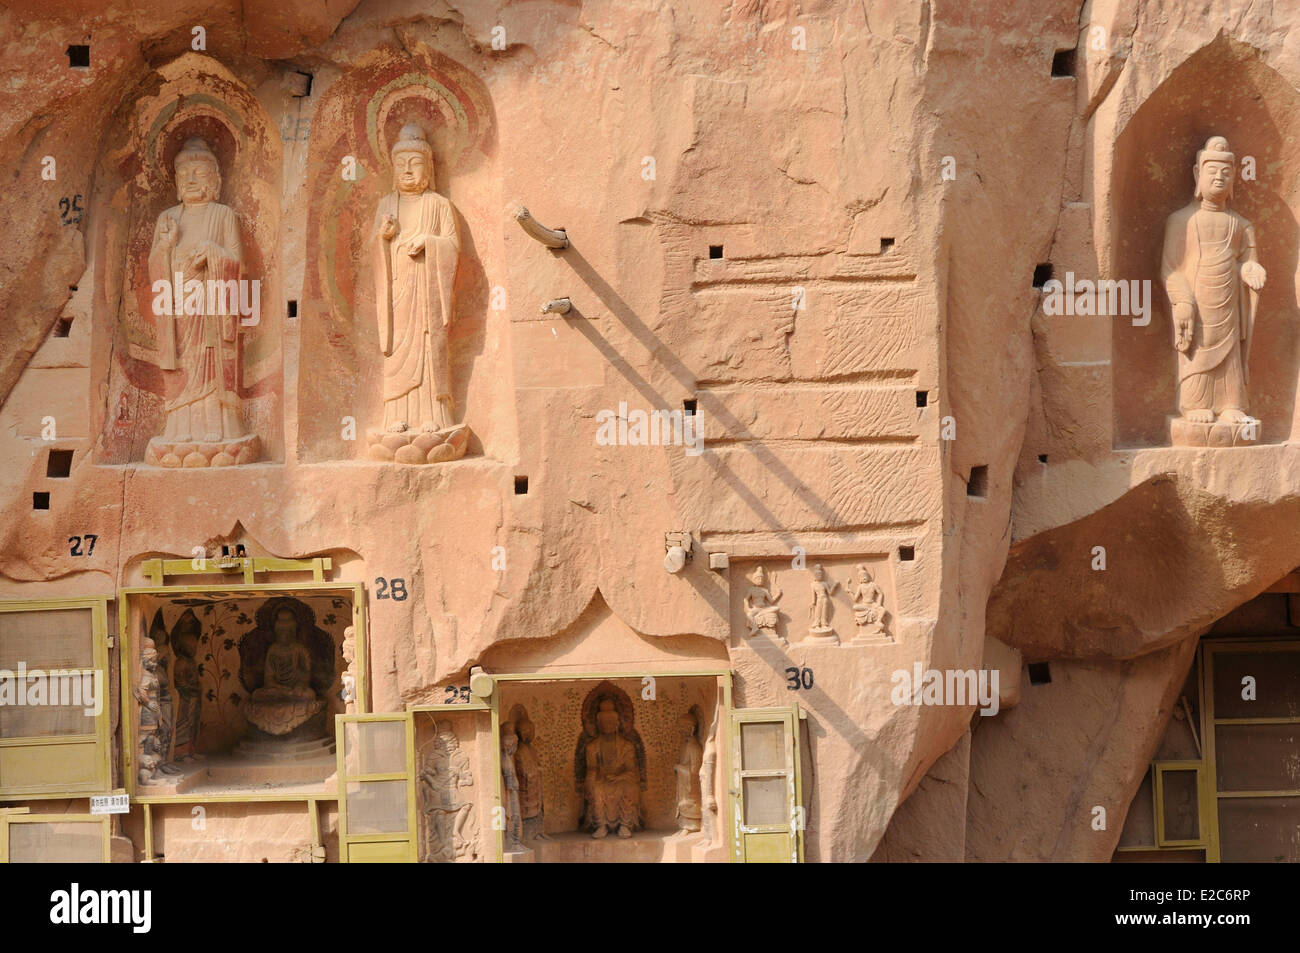 China, Gansu, surroundings of Linxia, Bingling Si caves - Stock Image